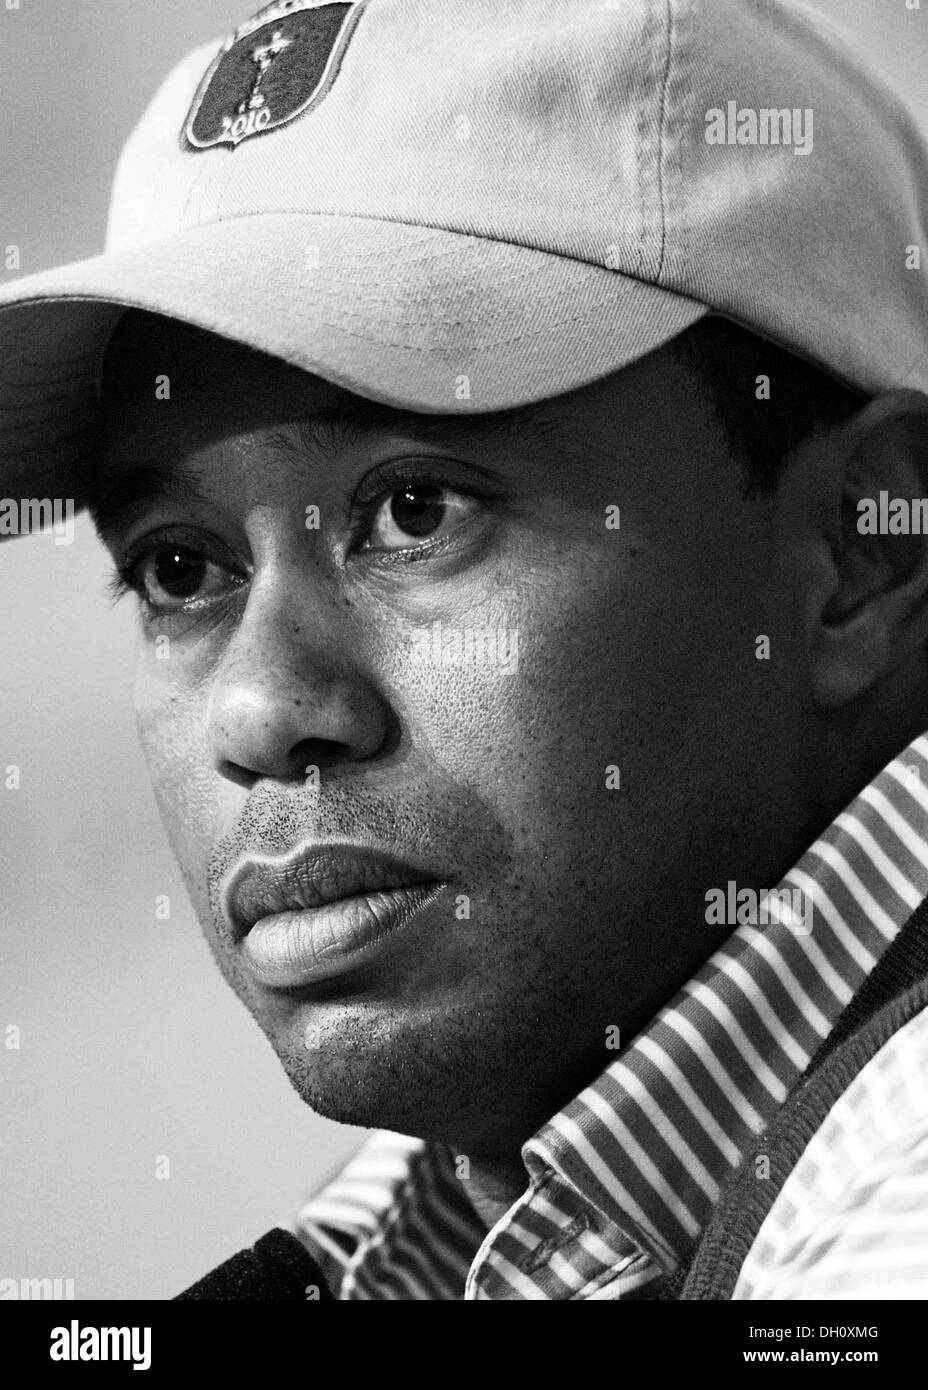 3ca3988bf Tiger Woods Black and White Stock Photos & Images - Alamy